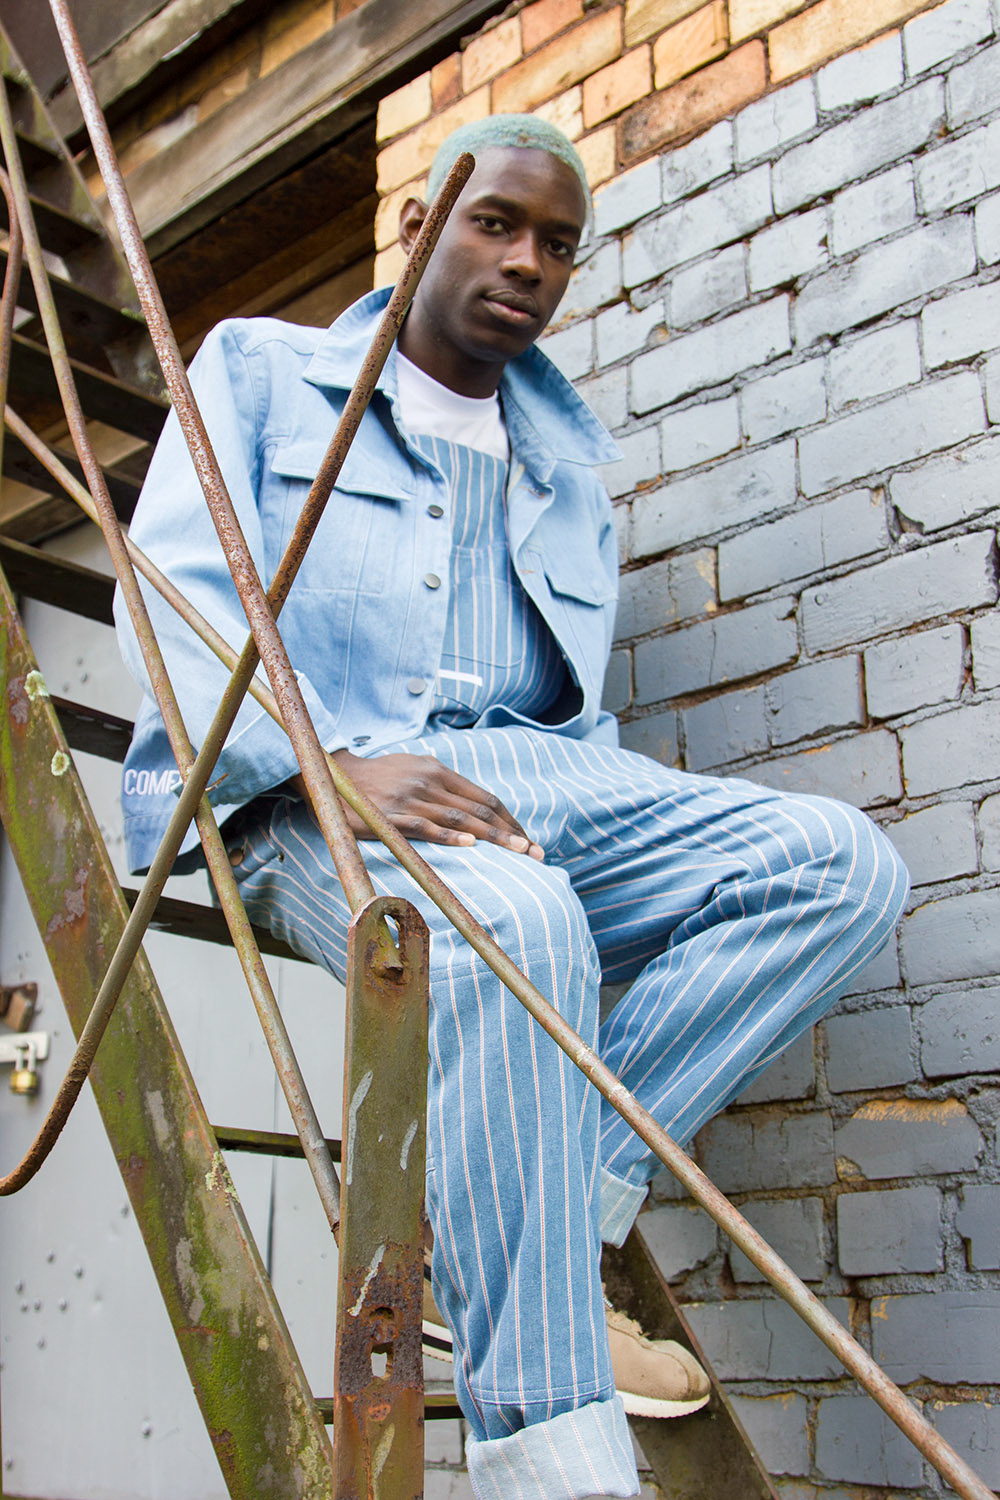 out of comfort menswear worn by masculine-presenting model sitting on steps